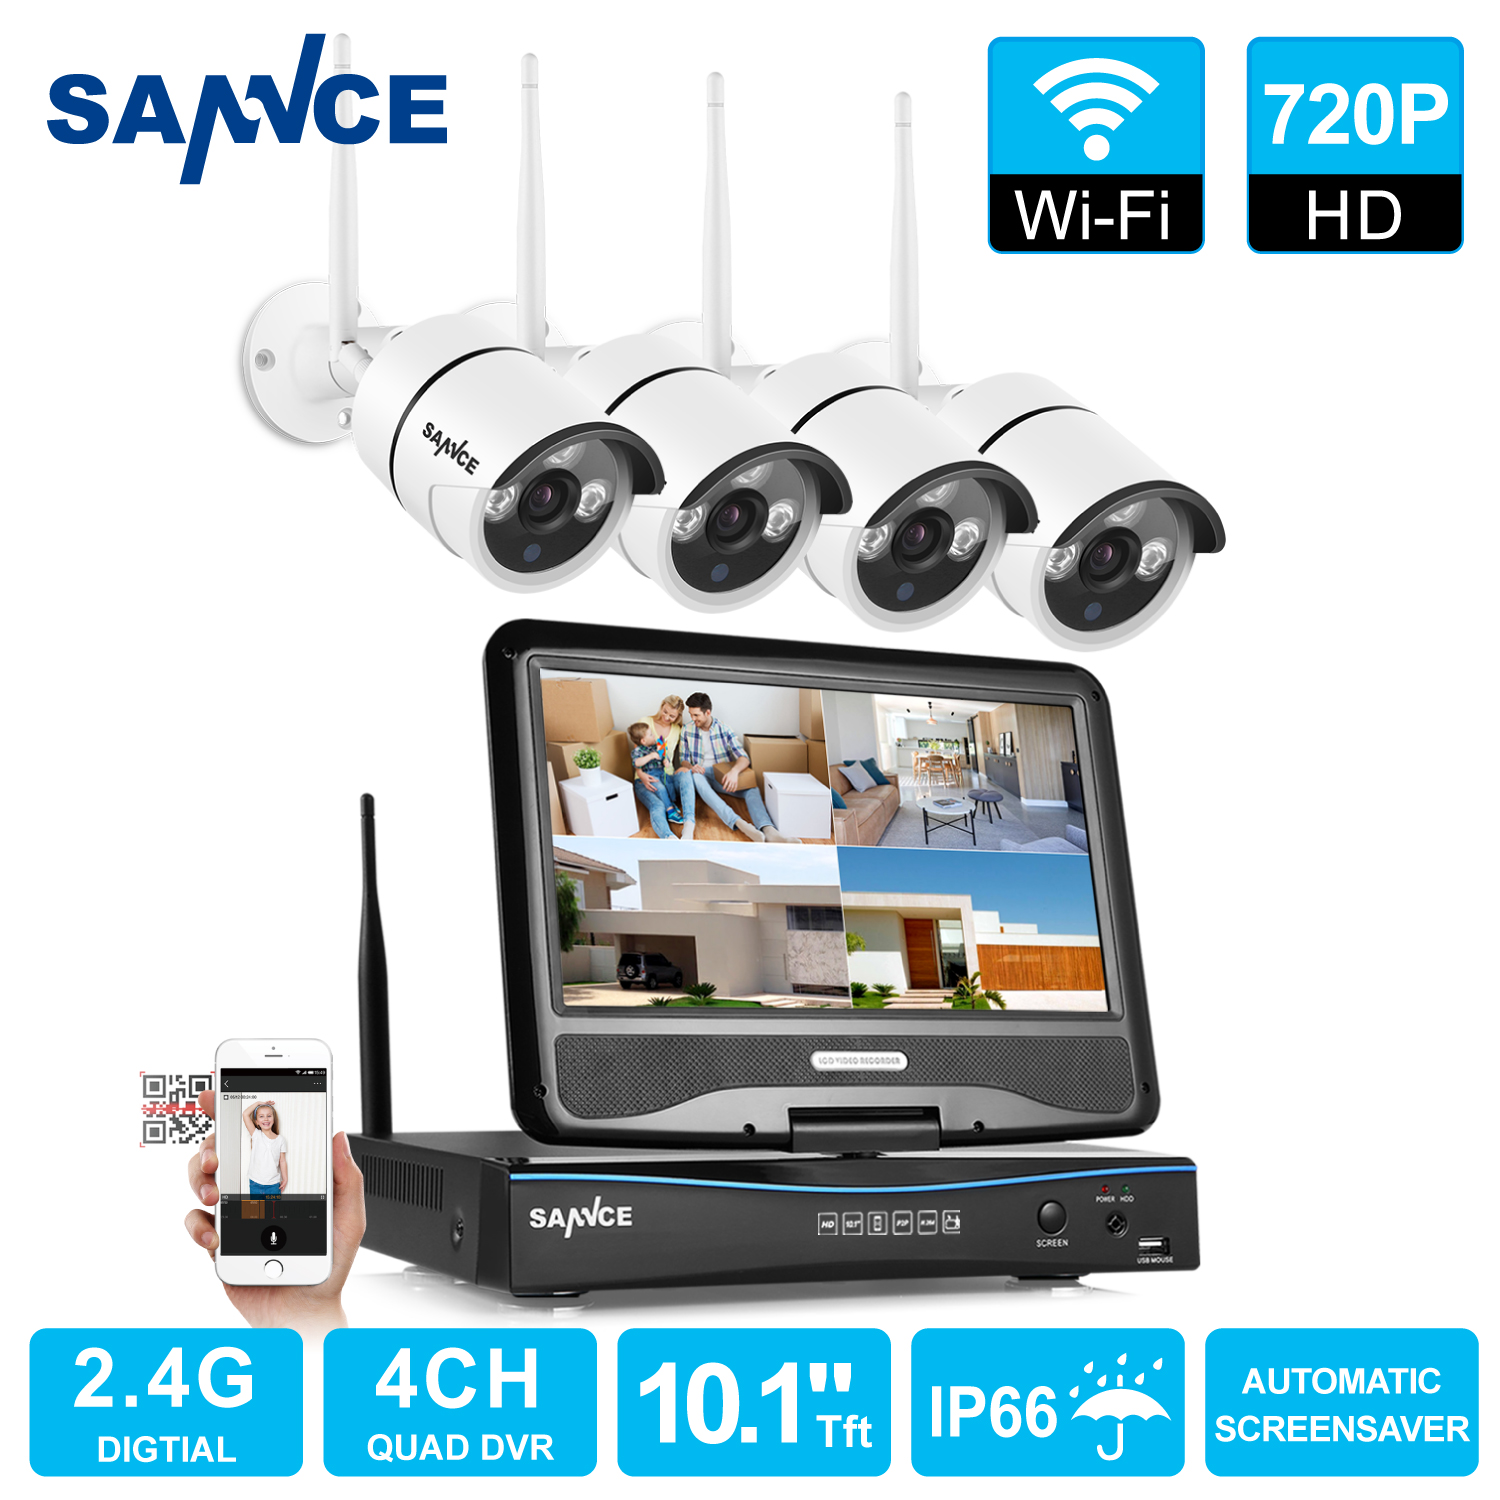 SANNCE 4CH 720P WIFI CCTV System HDMI NVR With 10.1'' LCD Screen 4PCS 1.0 MP IR Outdoor P2P Wireless IP Camera Security System Surveillance Kit With NO Hard Drive Disk